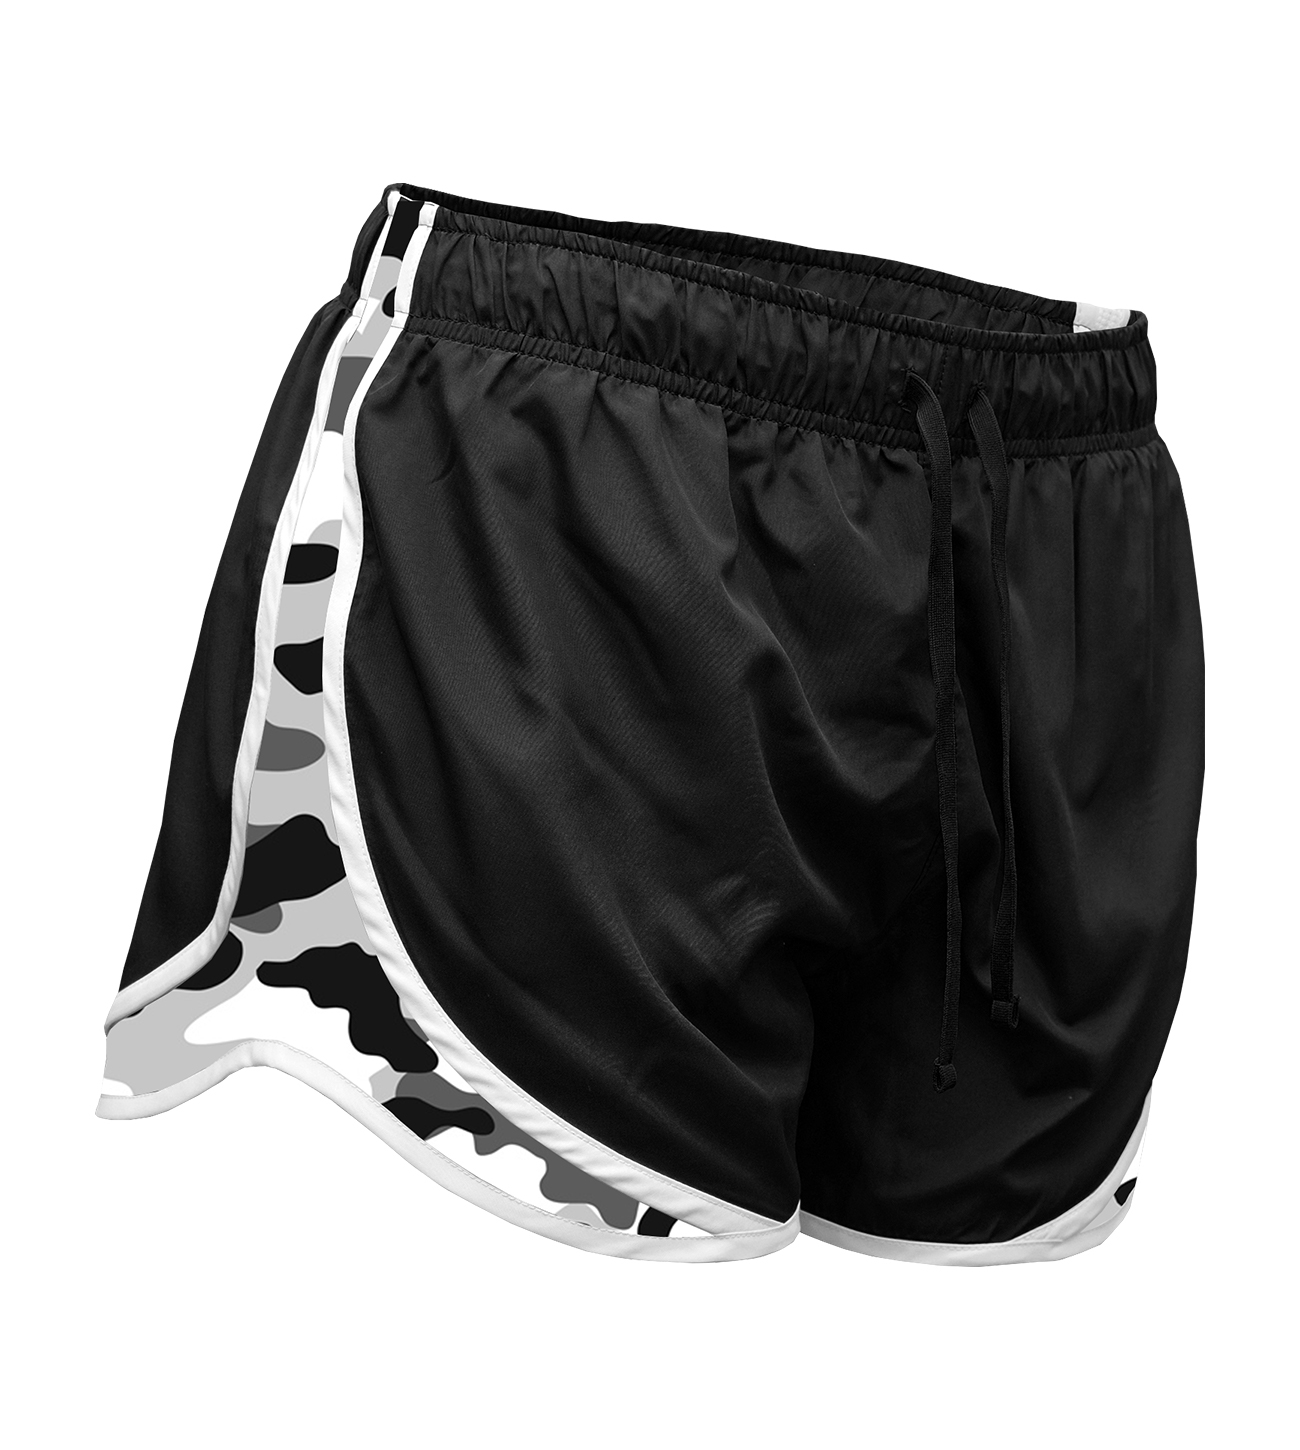 BAW Athletic Wear S701 - Ladies Running Short